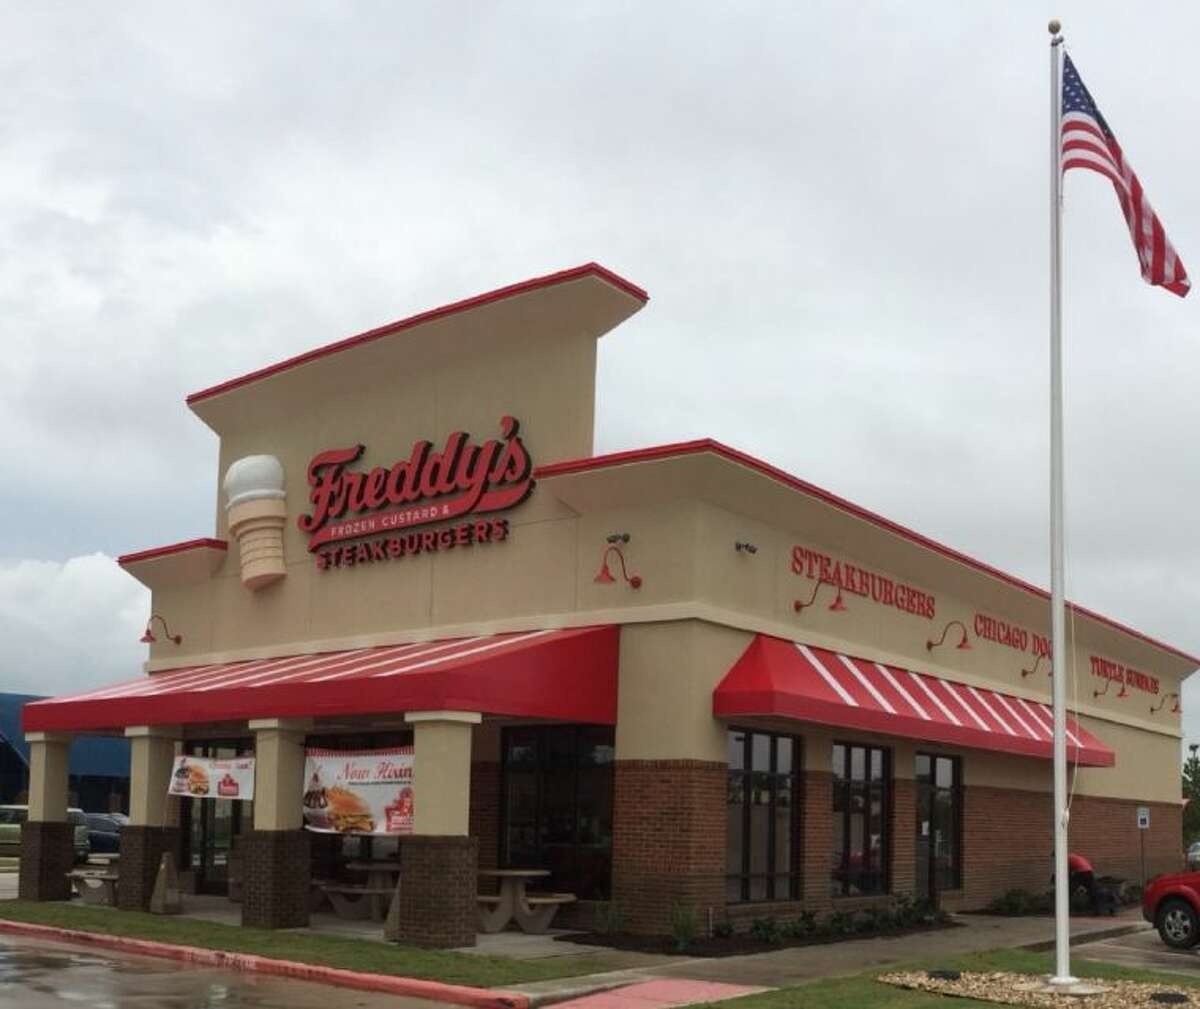 Fast-casual restaurant chain, Freddy's Frozen Custard & Steakburgers, opened July 1 at 32910 FM 2978 in the Westwood Village shopping center.